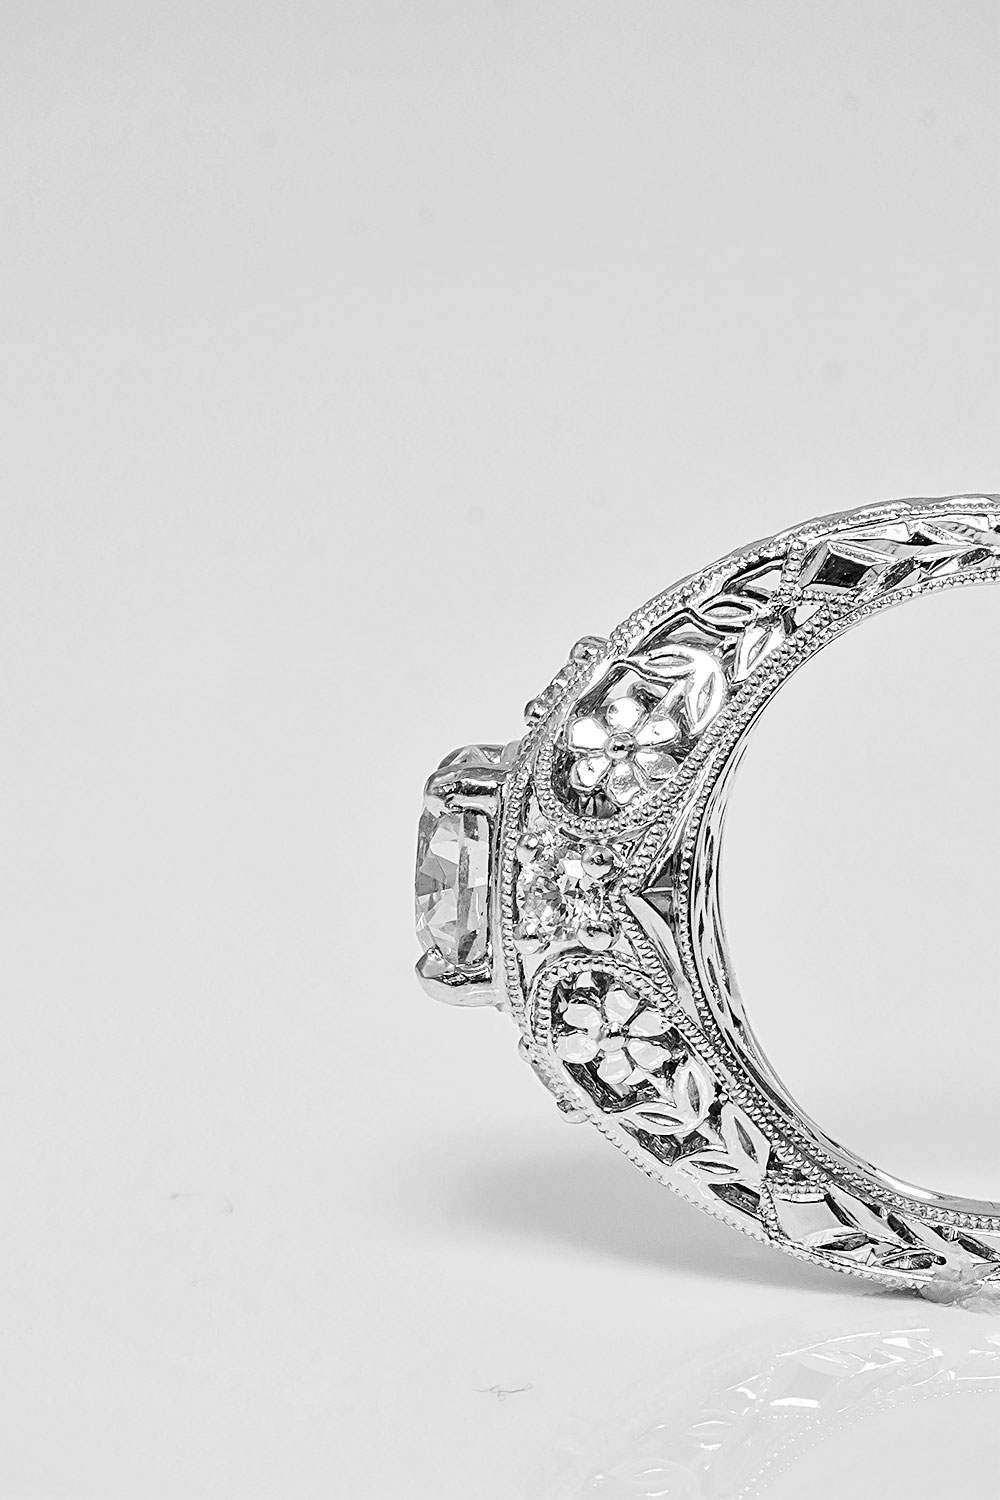 product-photography-southeastern-jewelers-diamond-engagement-ring.jpg